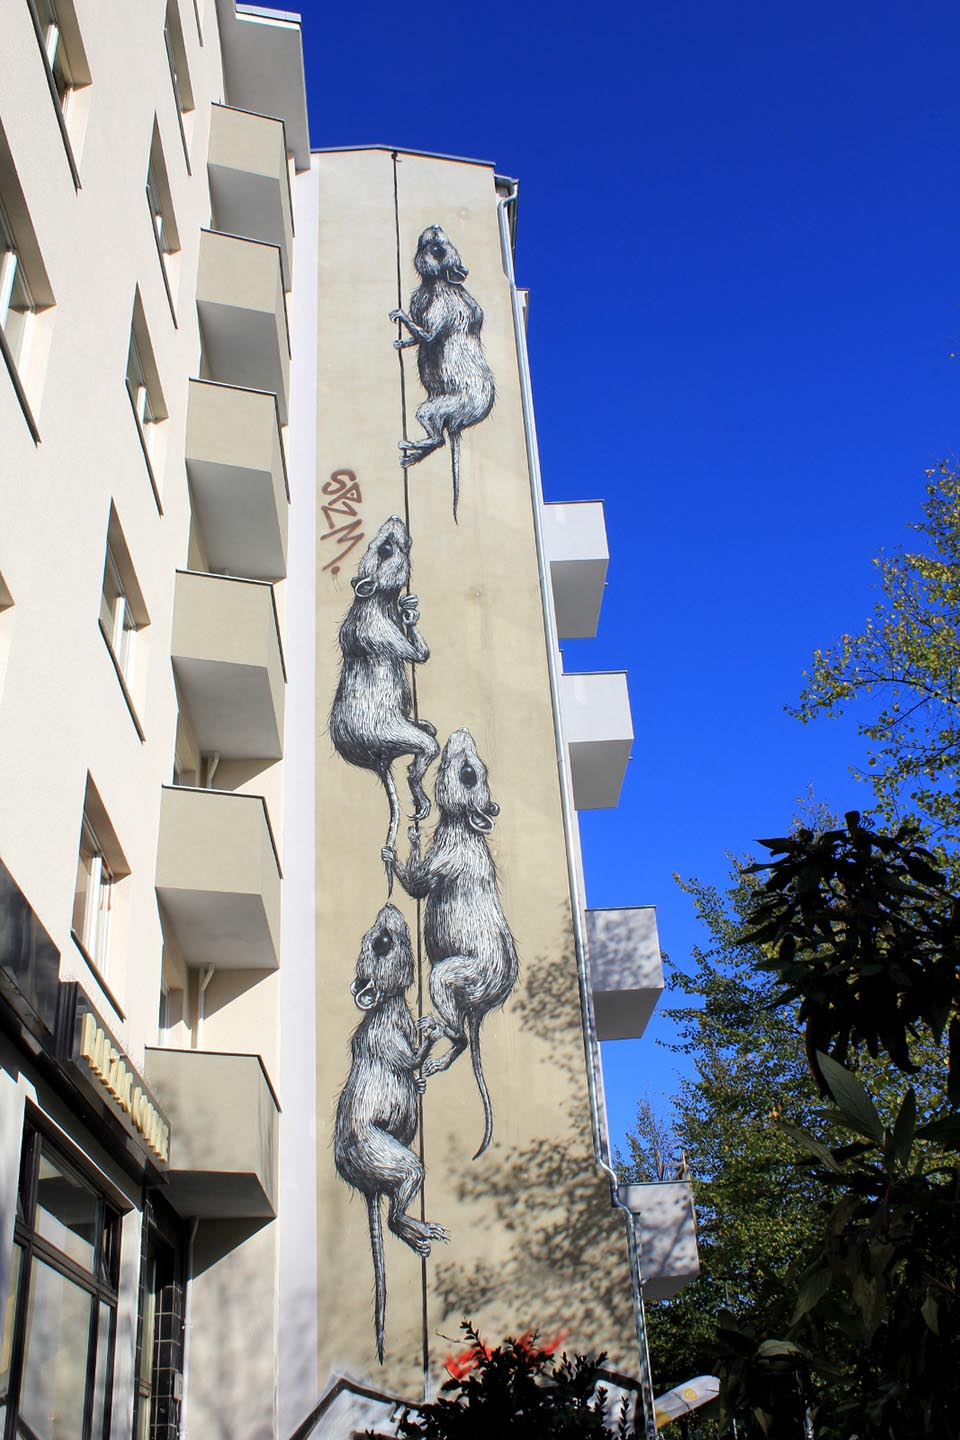 Mural of rats by Belgian Street Artist Roa in Berlin